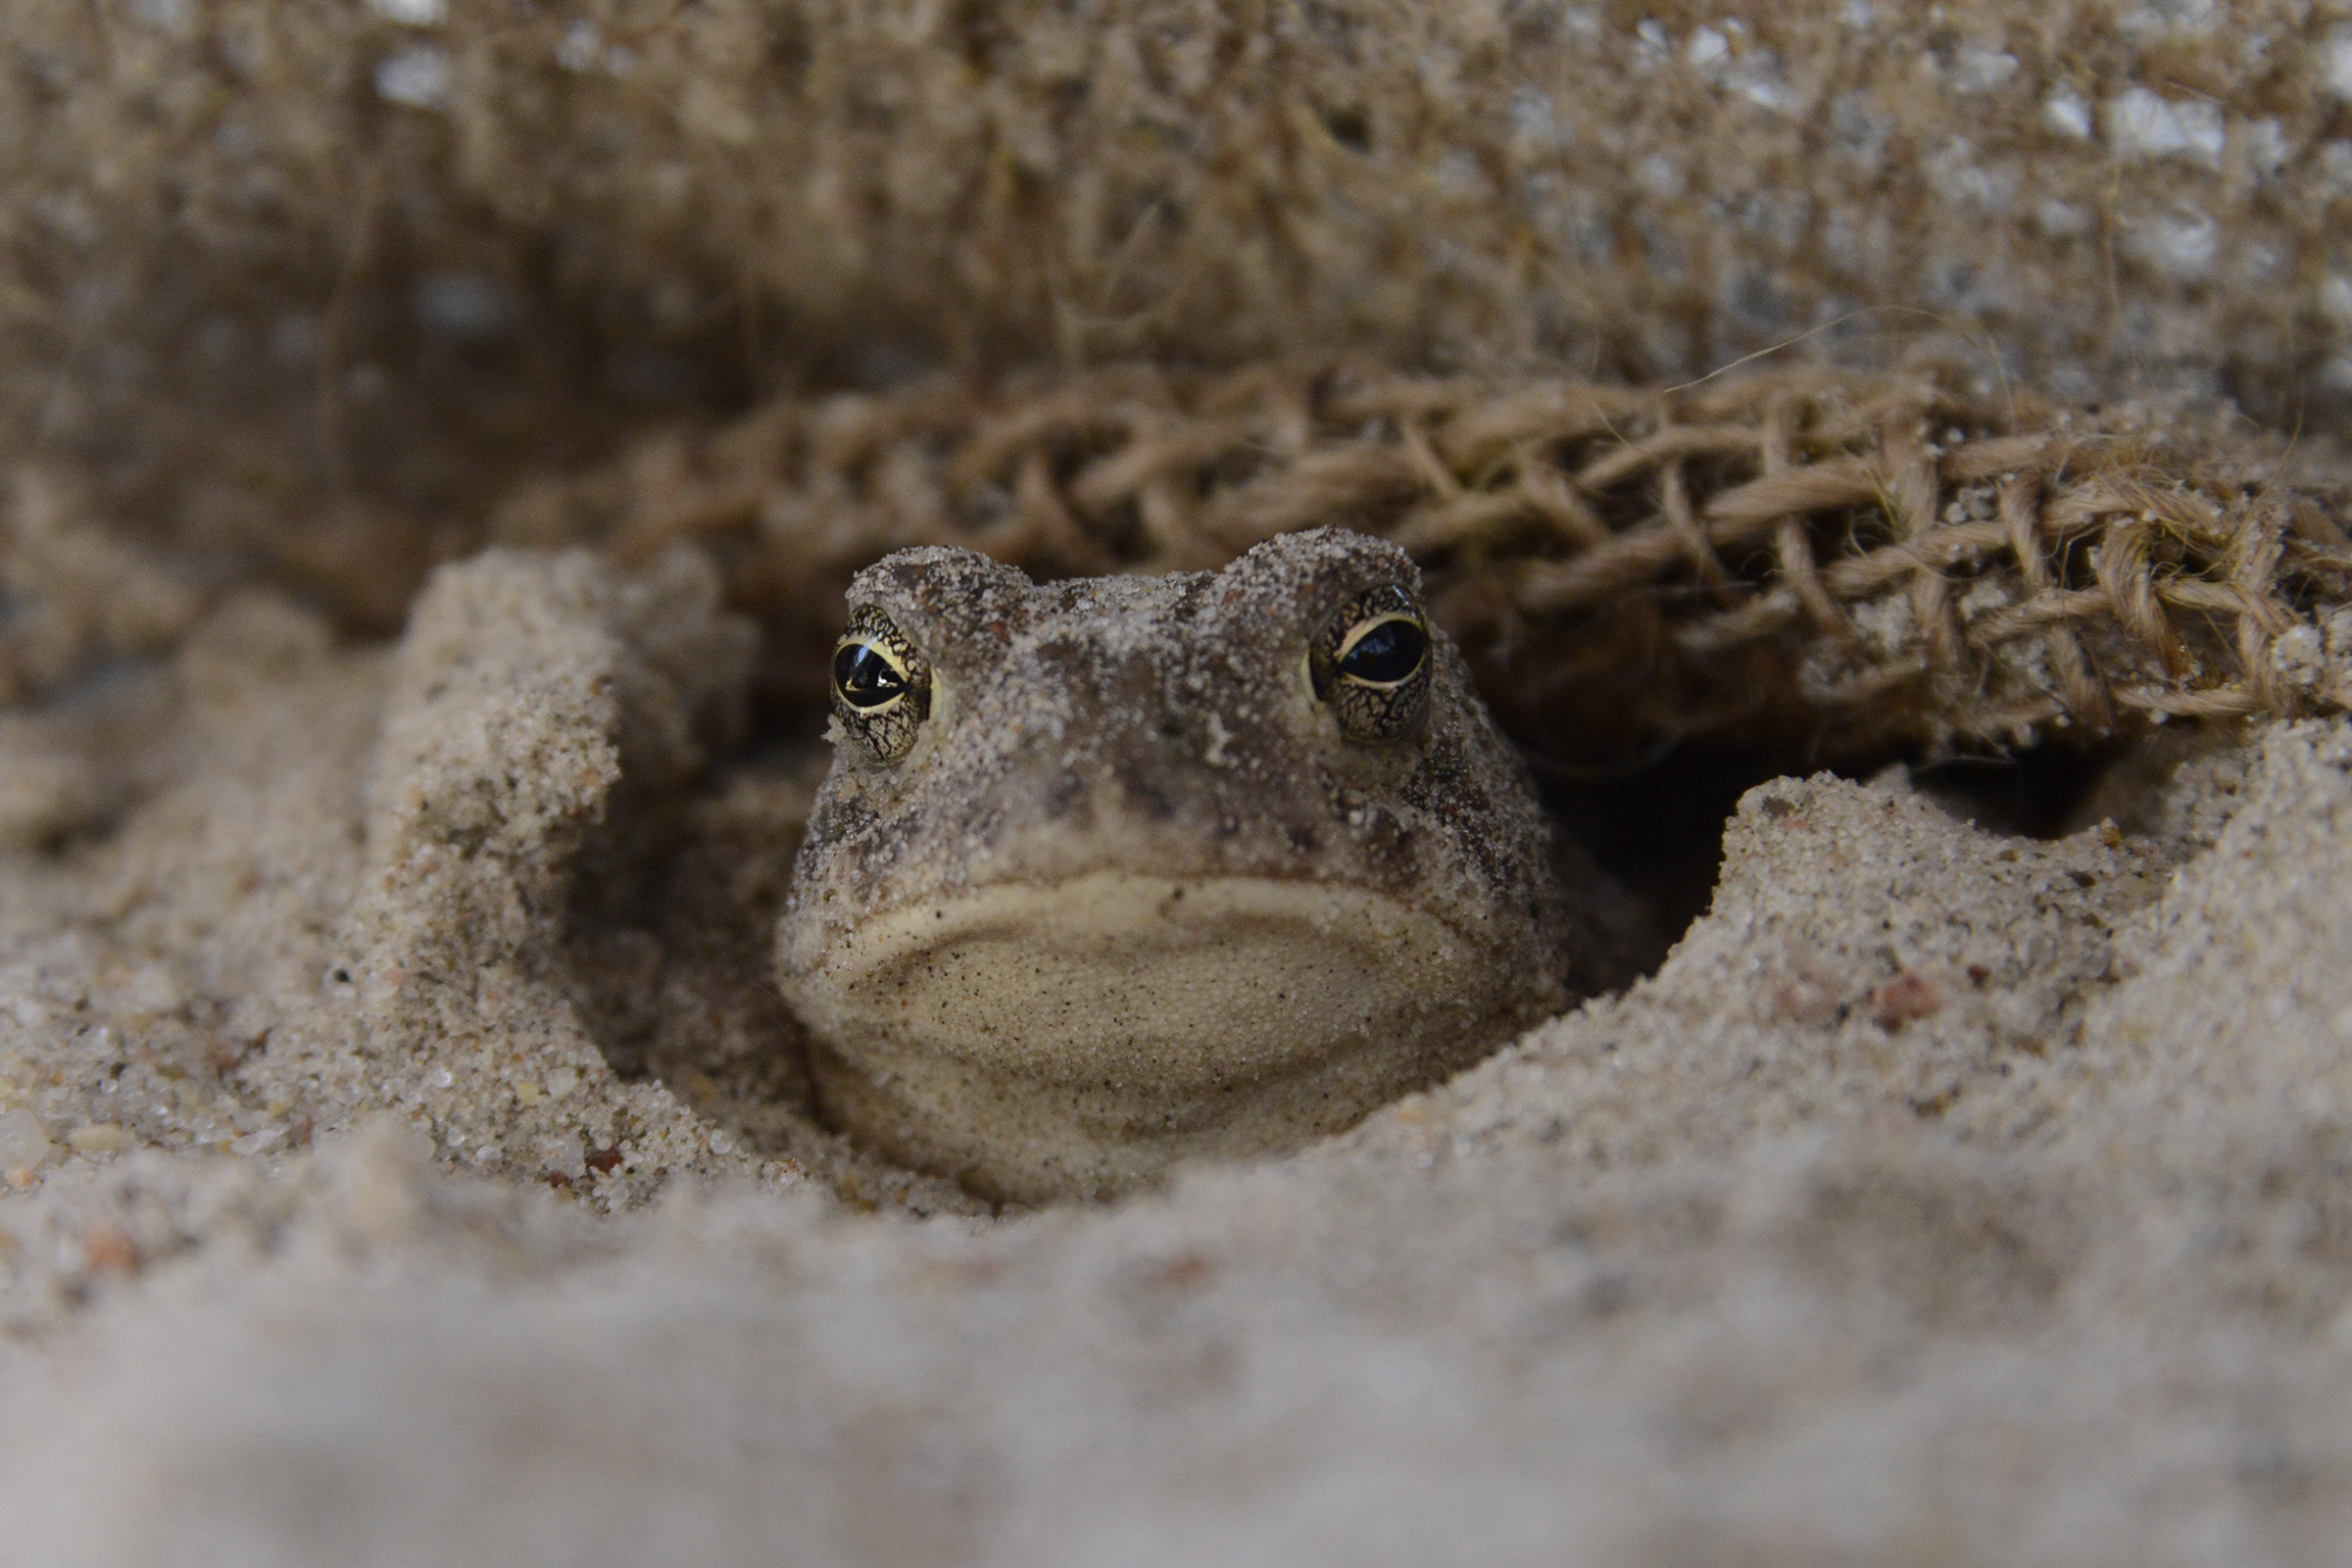 This small woodhouse toad was my constant companion during long vigils in the blind.